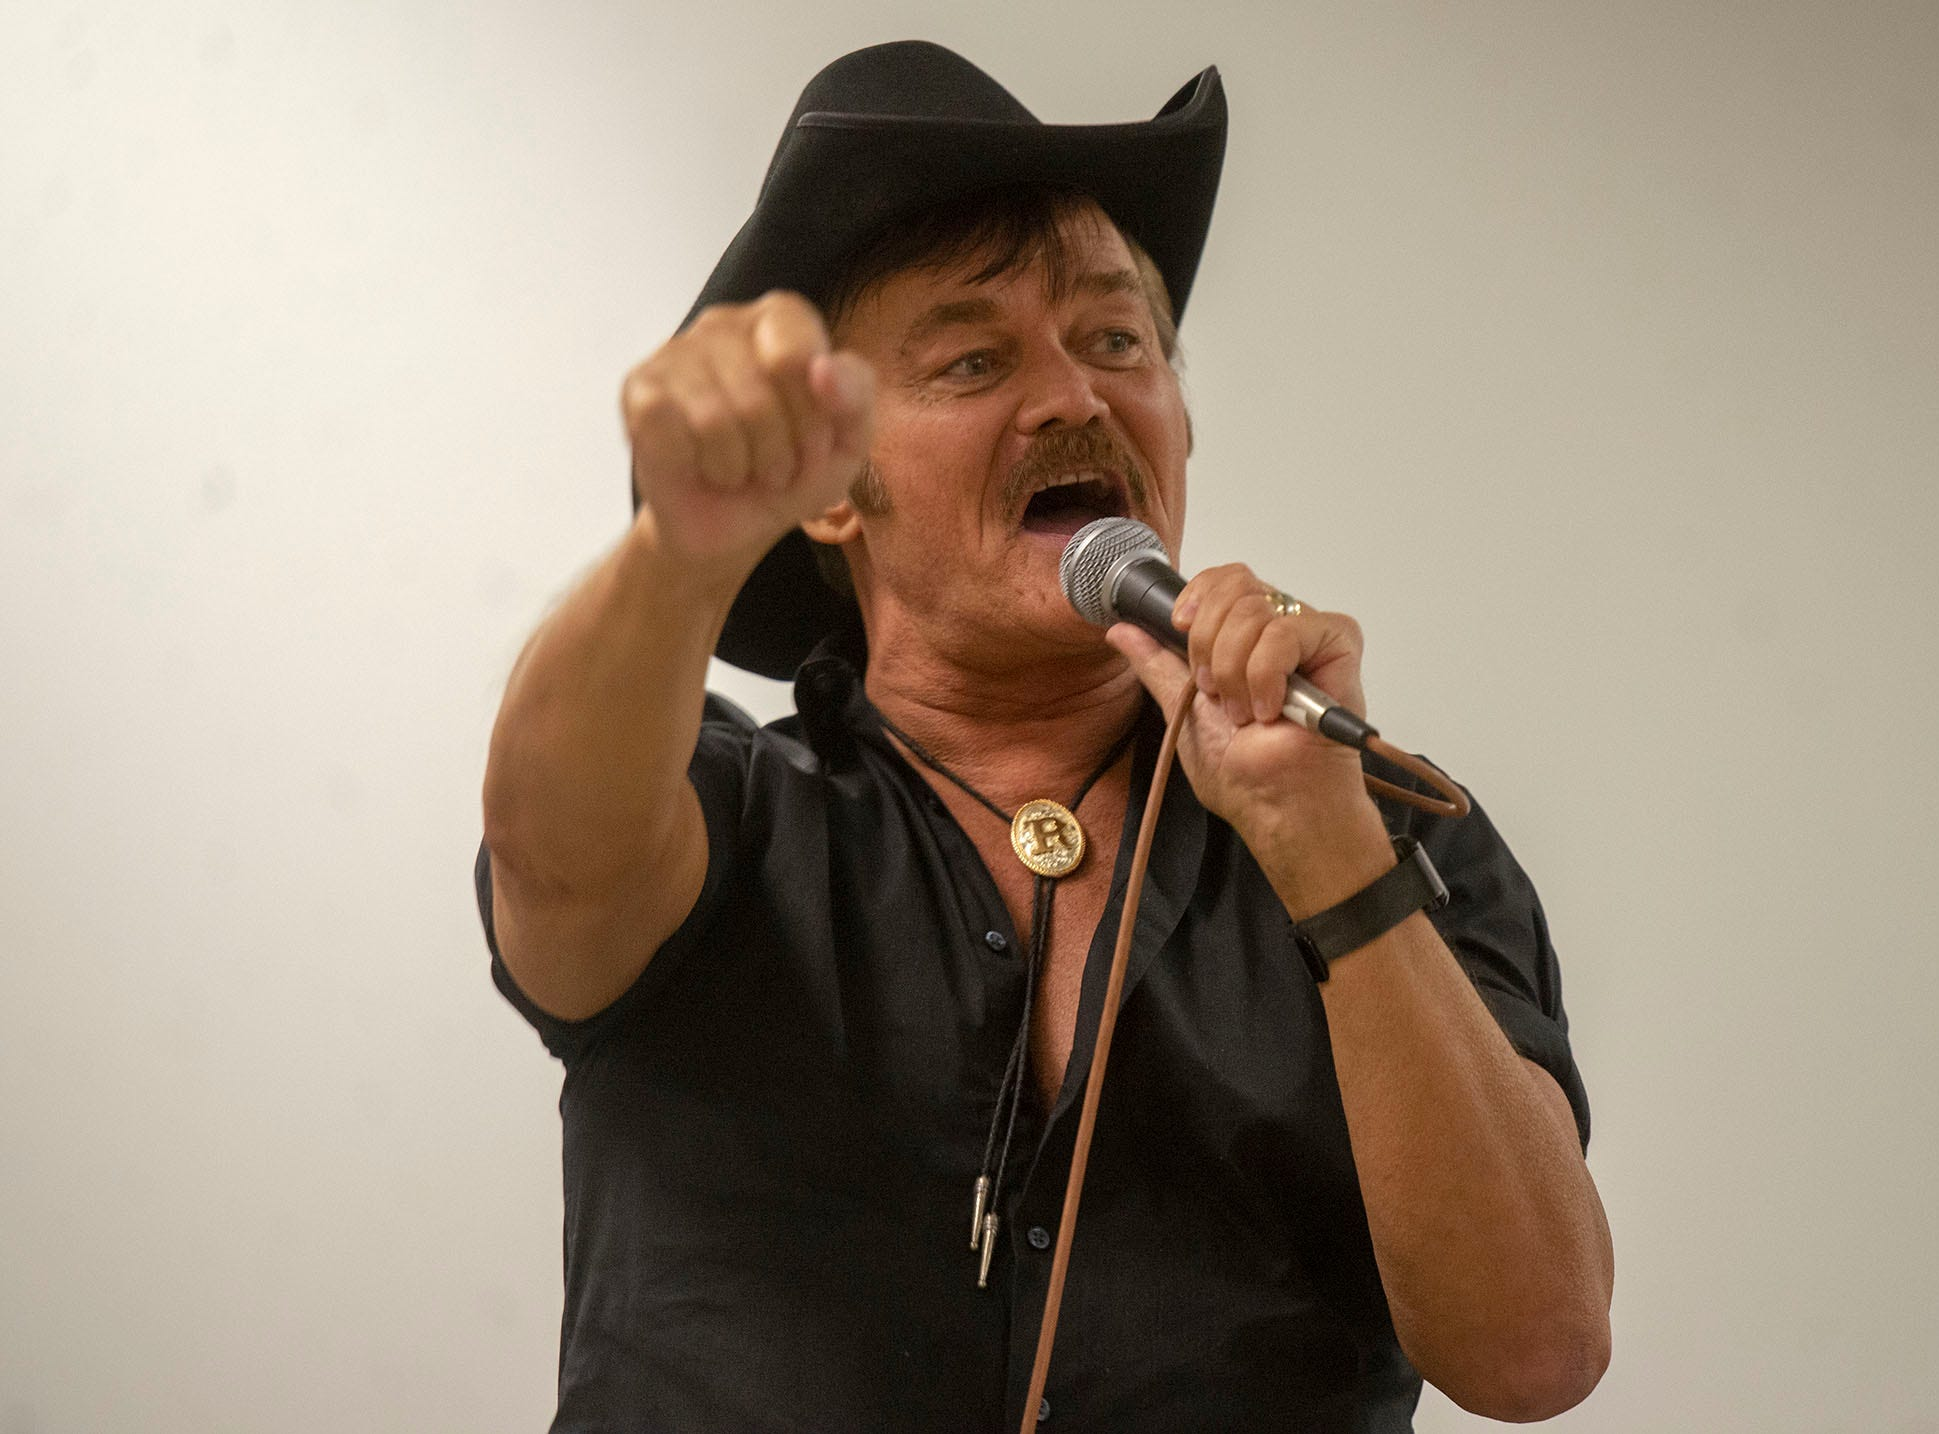 An original member of the Village People, Randy Jones was awarded a star on the Hollywood Walk of Fame in 2008. He is attending the White Rose Comic Con, which runs through Sunday, March 24, 2019 at Utz Arena of the York Fairgrounds.